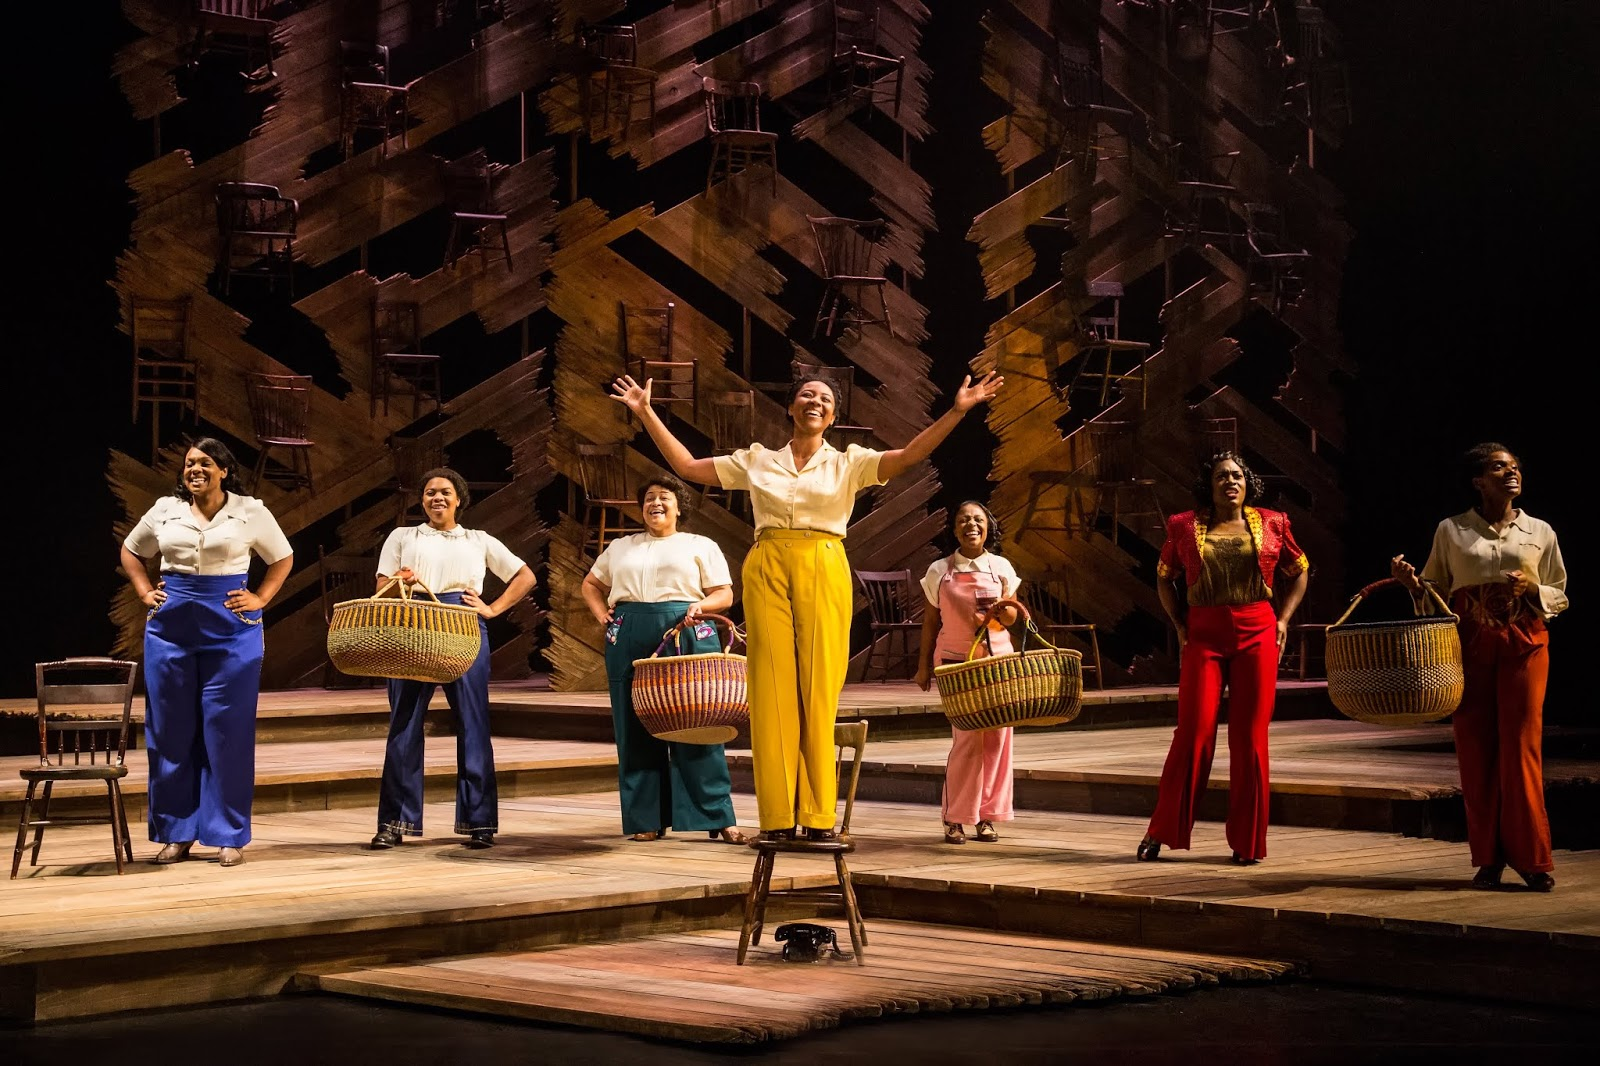 Ada Grey Reviews for You: Review of The Color Purple (Broadway in ...